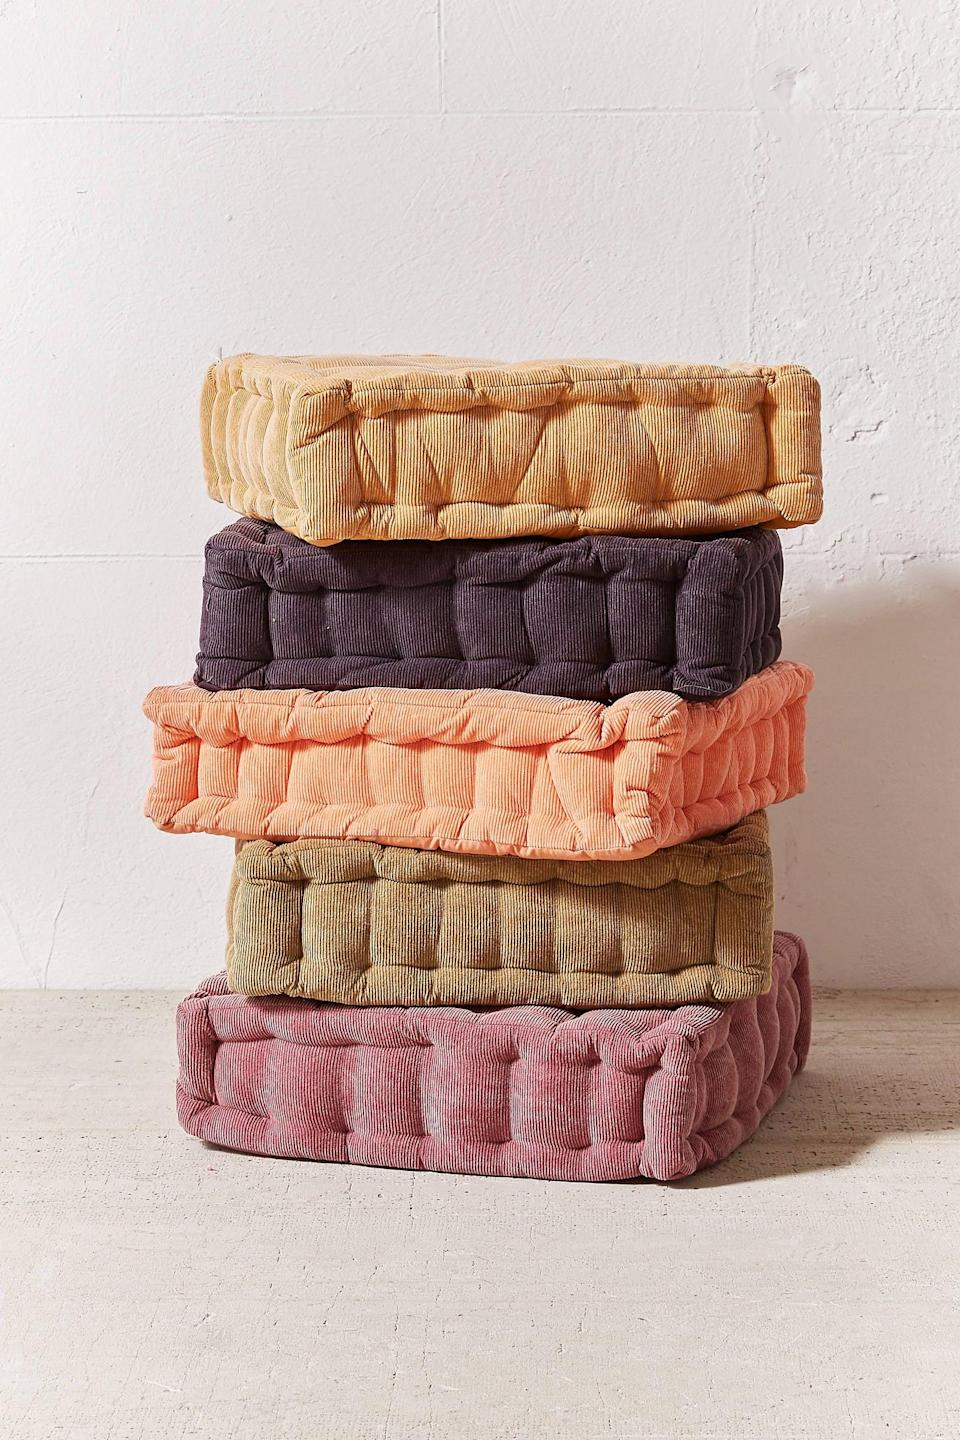 """<p>Create extra seating space with this <a href=""""https://www.popsugar.com/buy/Washed-Corduroy-Floor-Pillow-560406?p_name=Washed%20Corduroy%20Floor%20Pillow&retailer=urbanoutfitters.com&pid=560406&price=49&evar1=casa%3Aus&evar9=46598422&evar98=https%3A%2F%2Fwww.popsugar.com%2Fhome%2Fphoto-gallery%2F46598422%2Fimage%2F47342589%2FWashed-Corduroy-Floor-Pillow&list1=shopping%2Chome%20decor%2Chome%20shopping&prop13=mobile&pdata=1"""" class=""""link rapid-noclick-resp"""" rel=""""nofollow noopener"""" target=""""_blank"""" data-ylk=""""slk:Washed Corduroy Floor Pillow"""">Washed Corduroy Floor Pillow</a> ($49).</p>"""